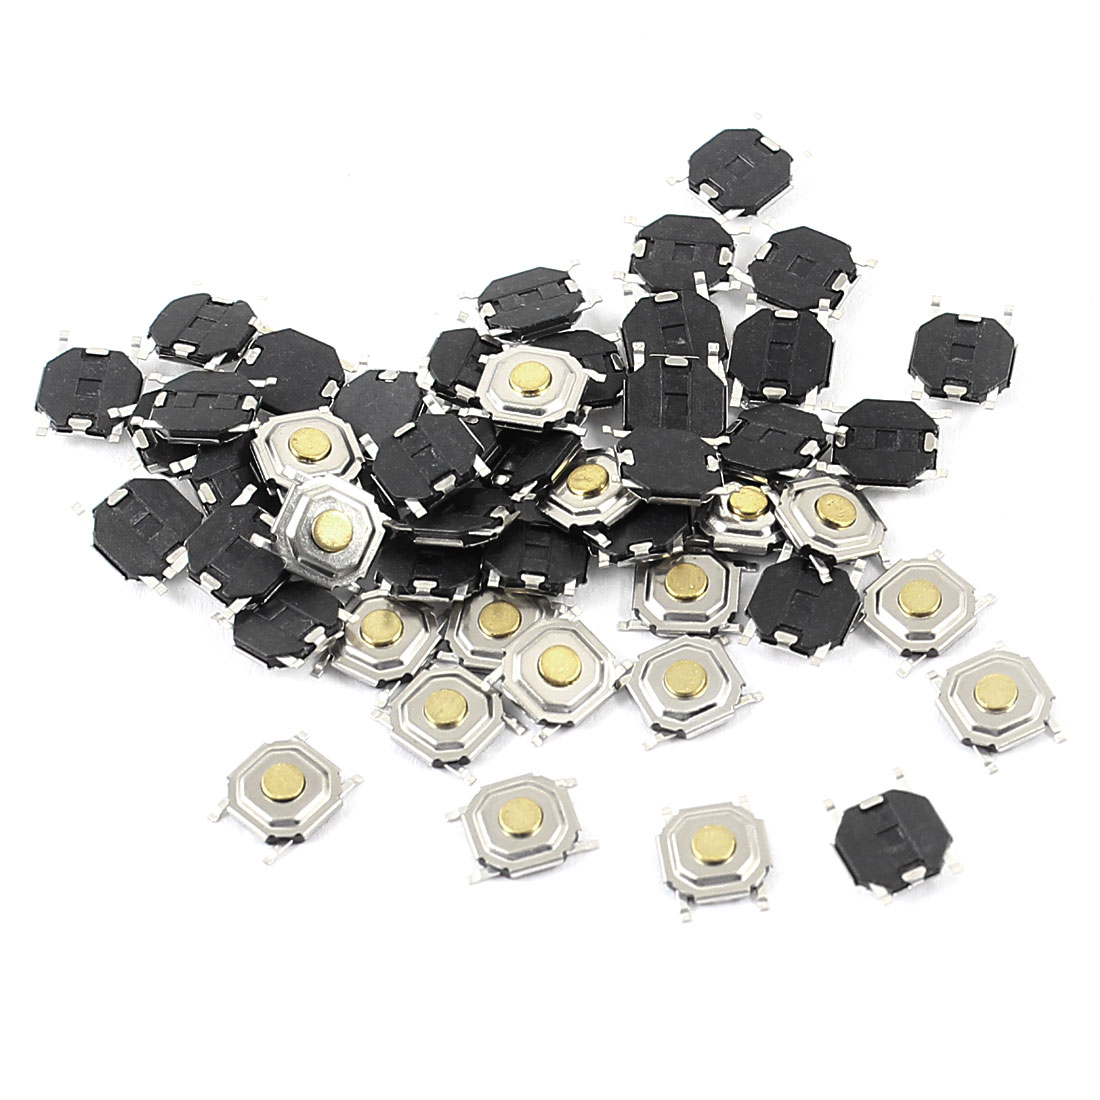 50pcs Momentary Round Push Button SPST Tactile Tact Switch 5mmx5mmx1.5mm